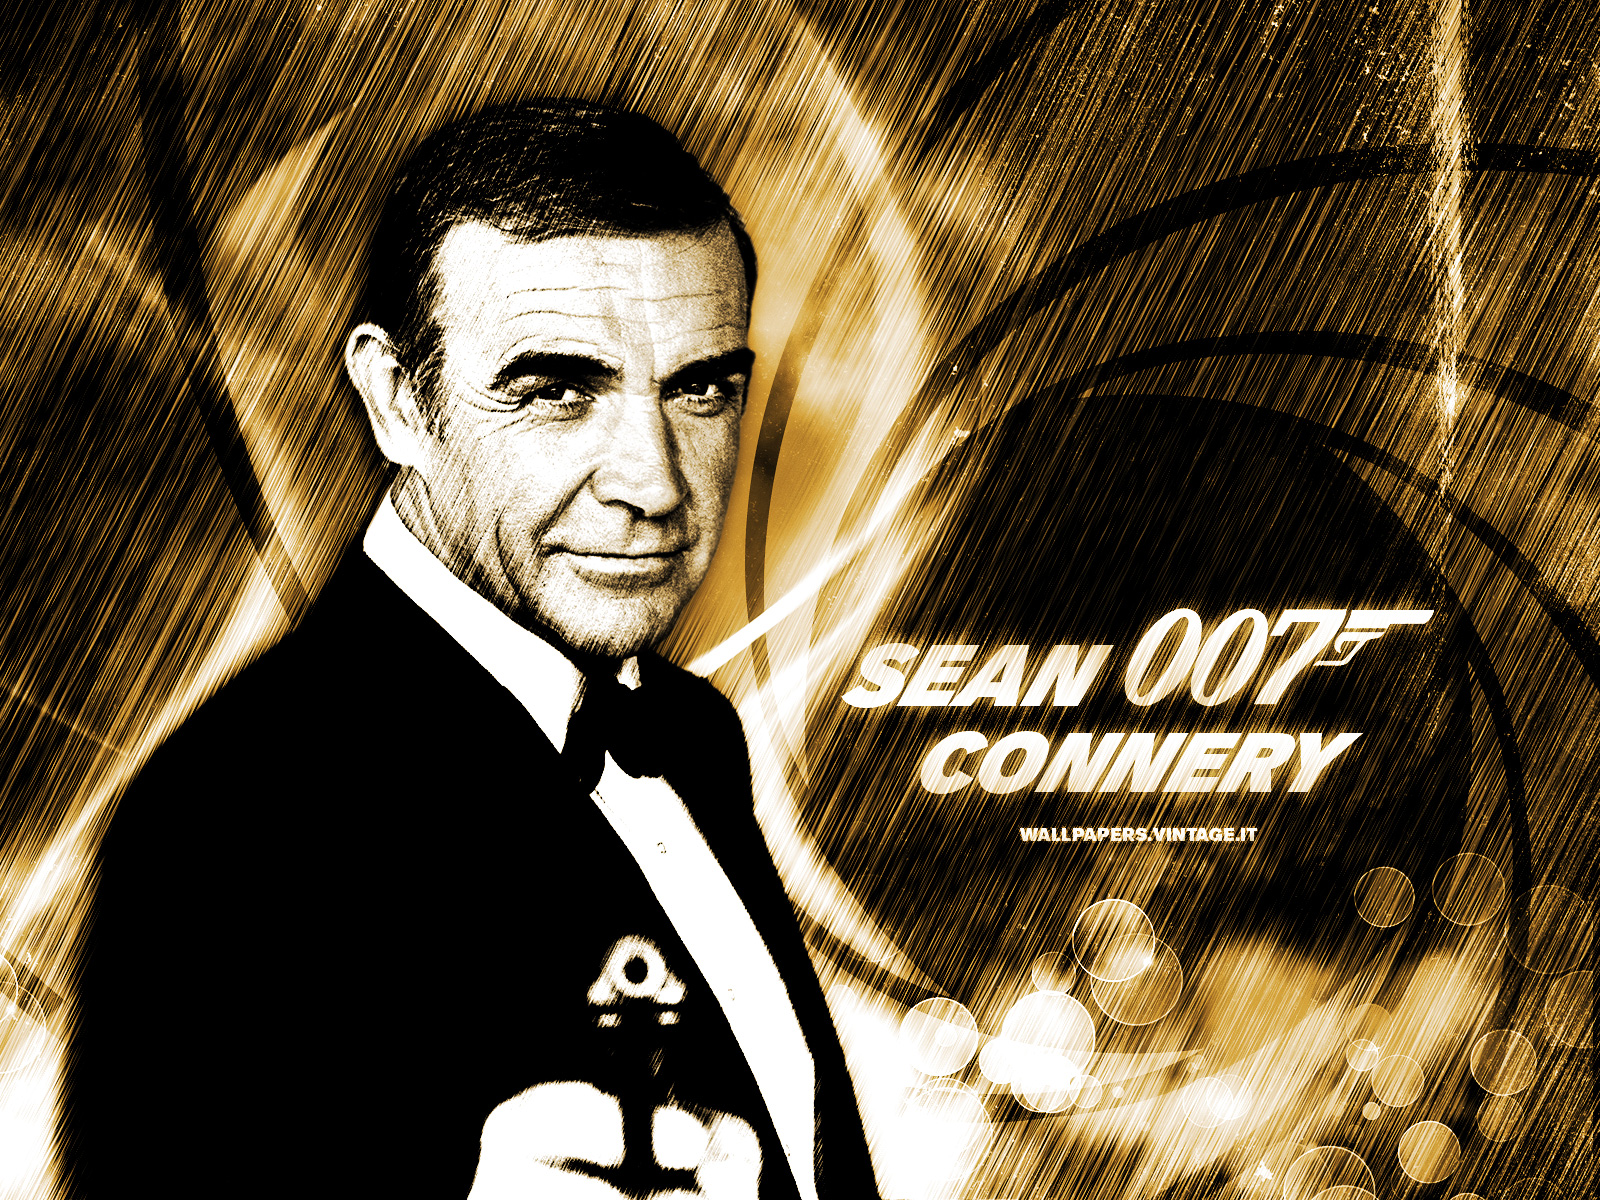 http://vintageonit.com/backgrounds/Sean_Connery_James_Bond_wallpaper_1600x1200.jpg